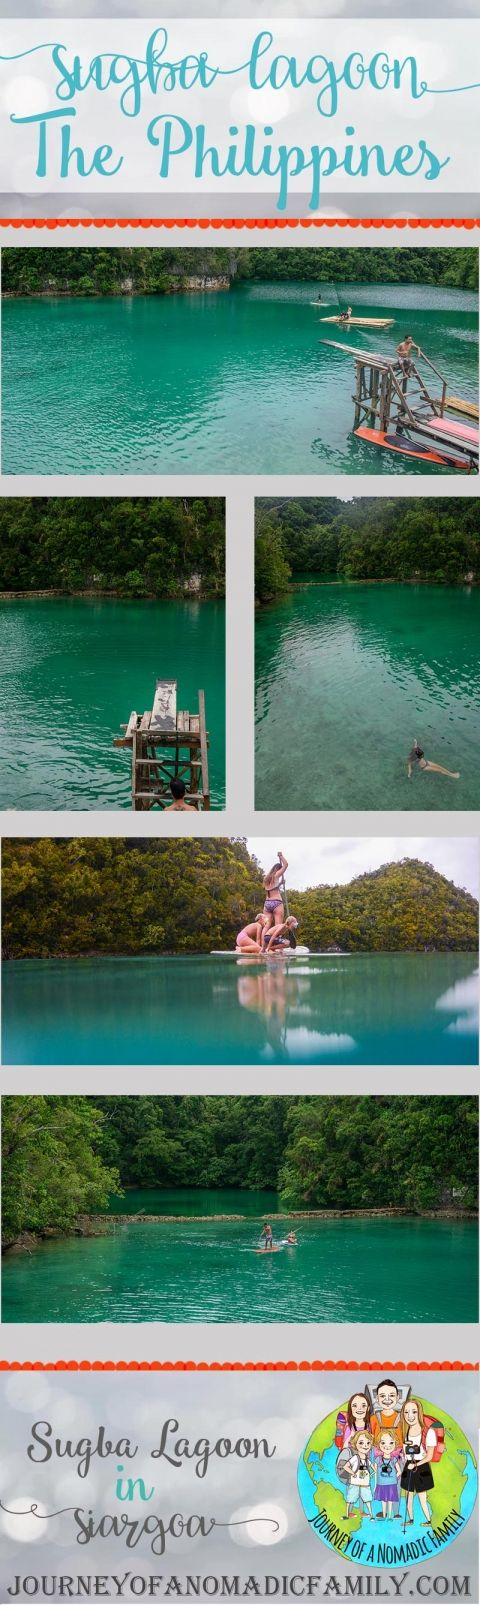 How to visit Sugba Lagoon by yourself. Sugba Lagoon is just off Siargao Island in The Philippines.